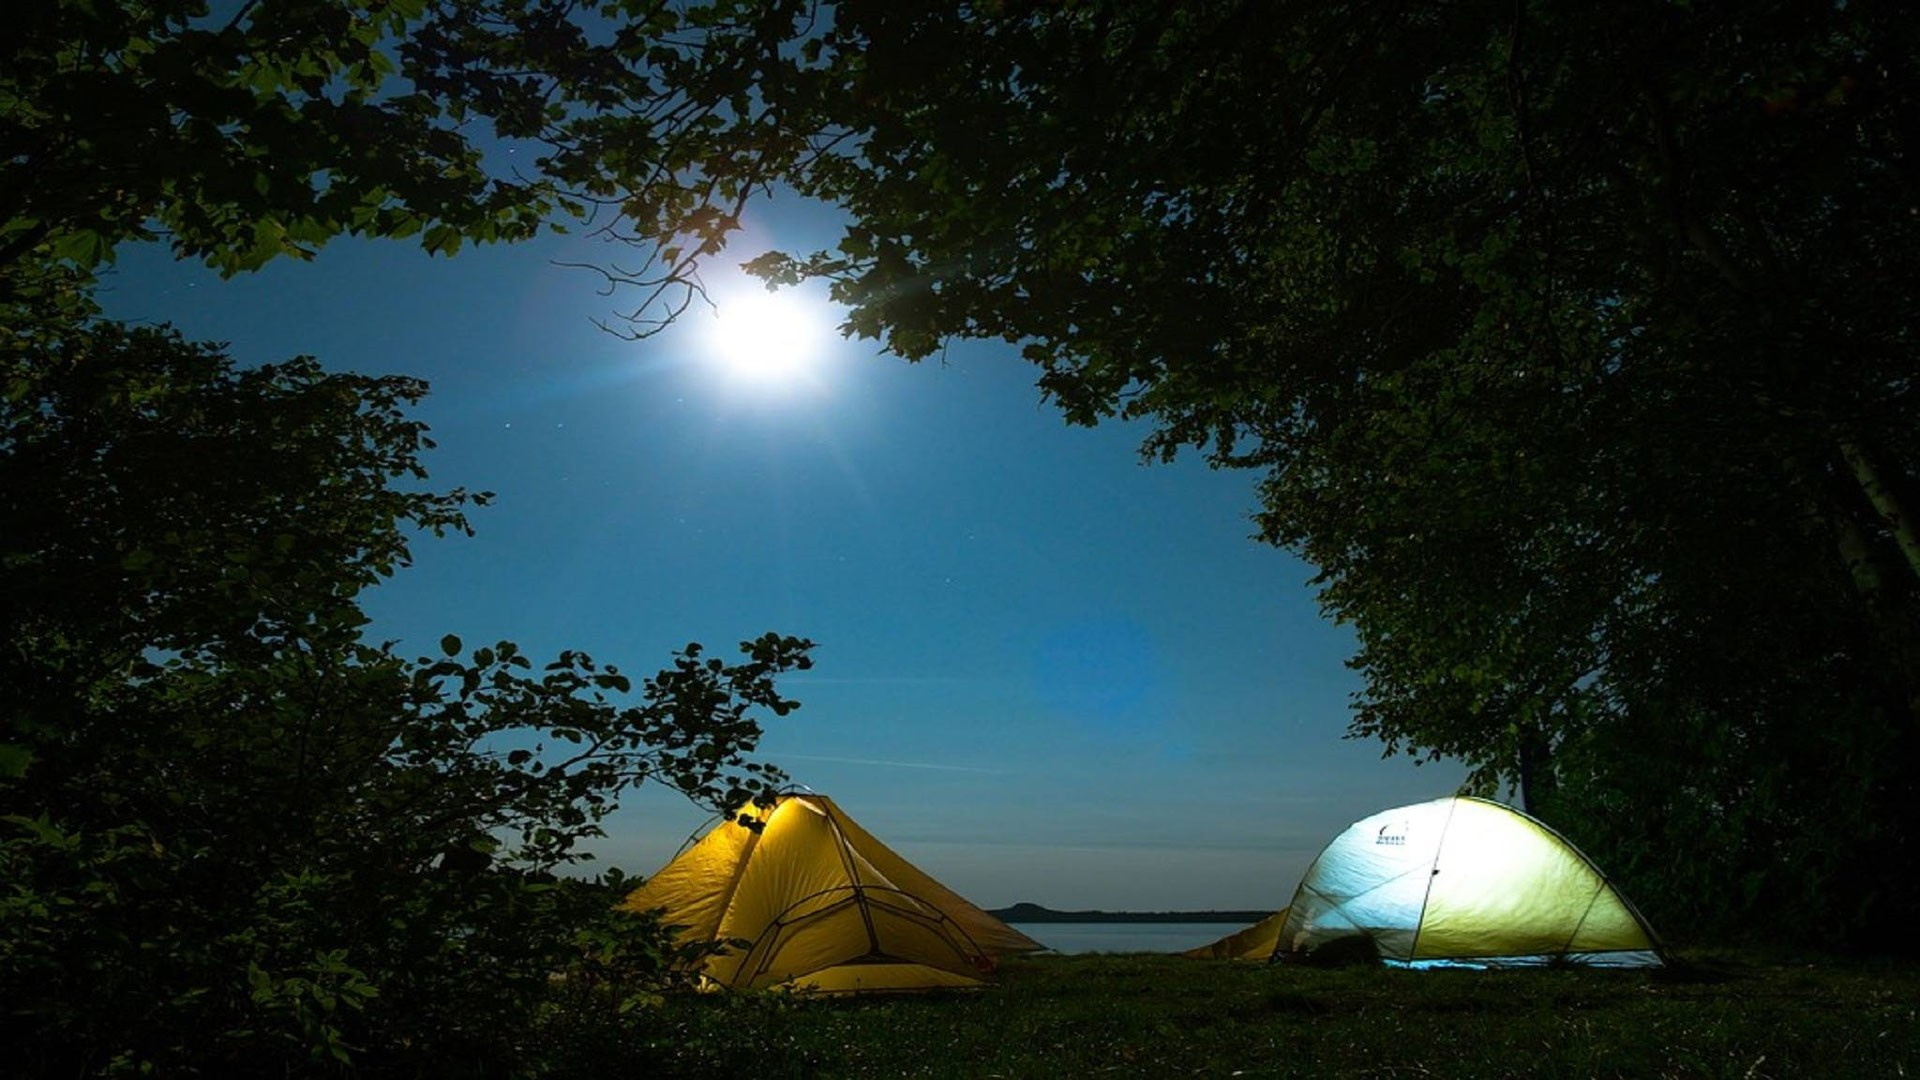 Camping Wallpaper for pc